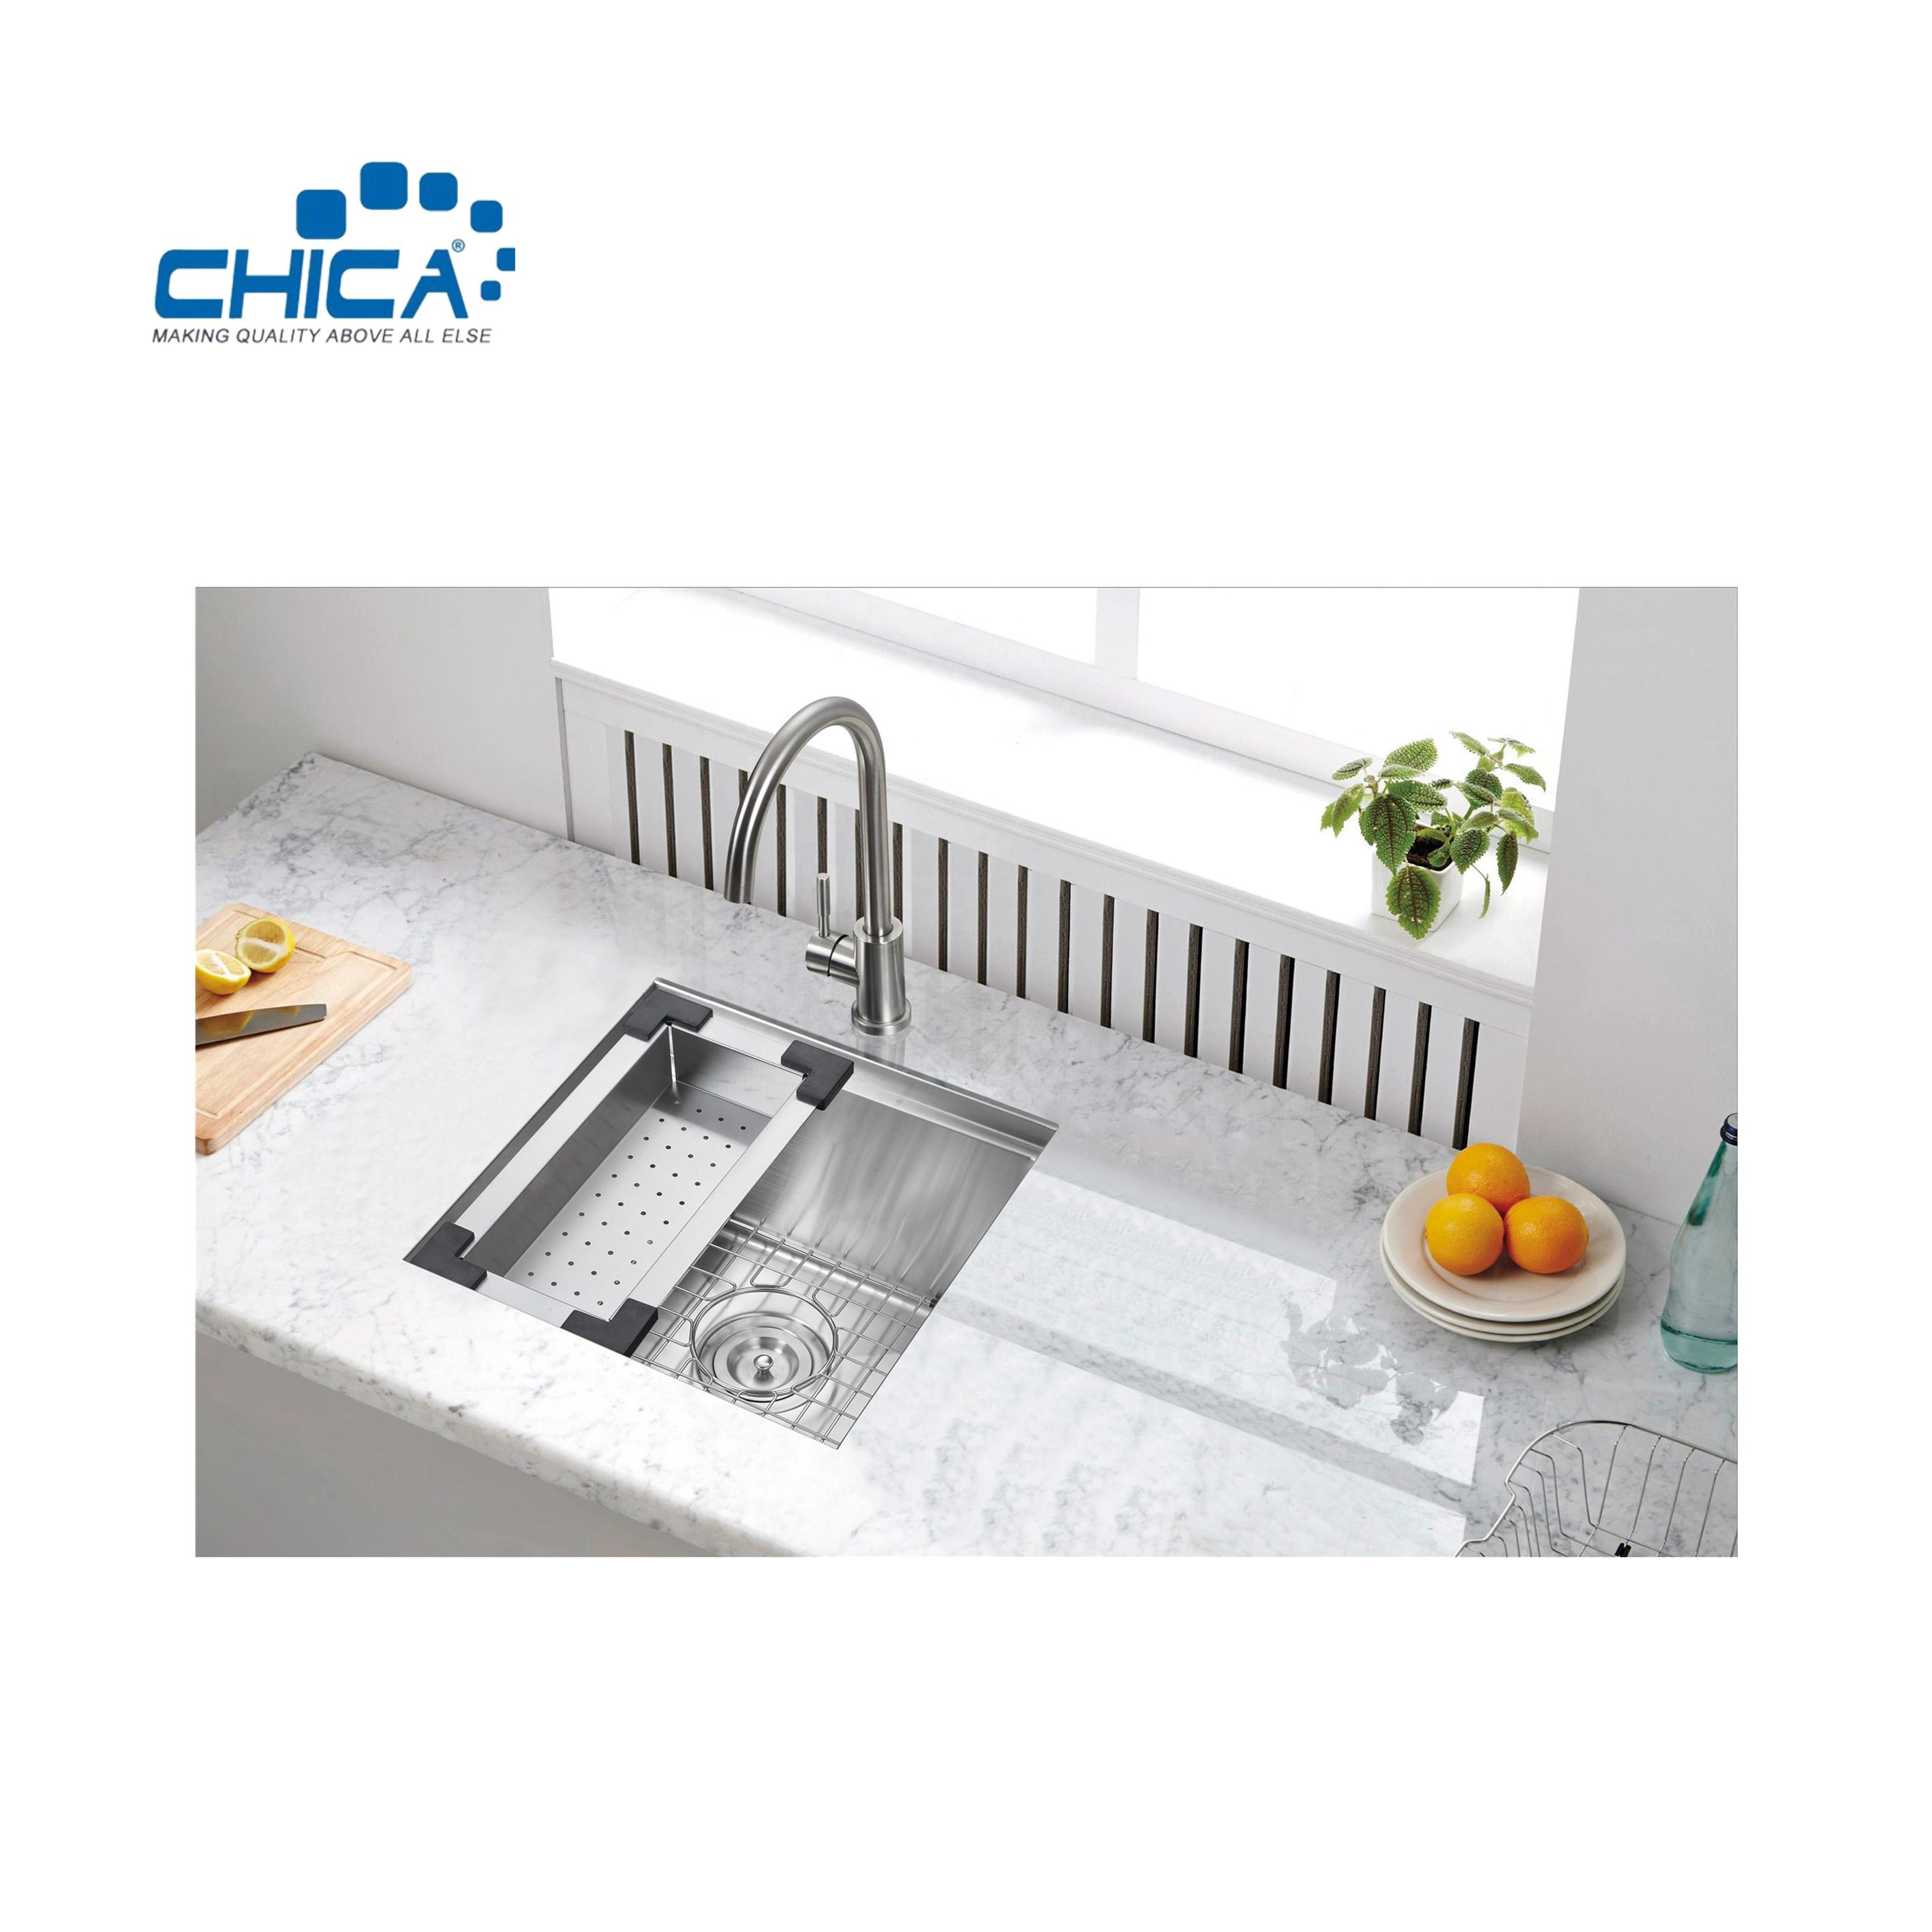 Undermount Single Bowl Handmade Stainless Steel Sink for House Kitchen